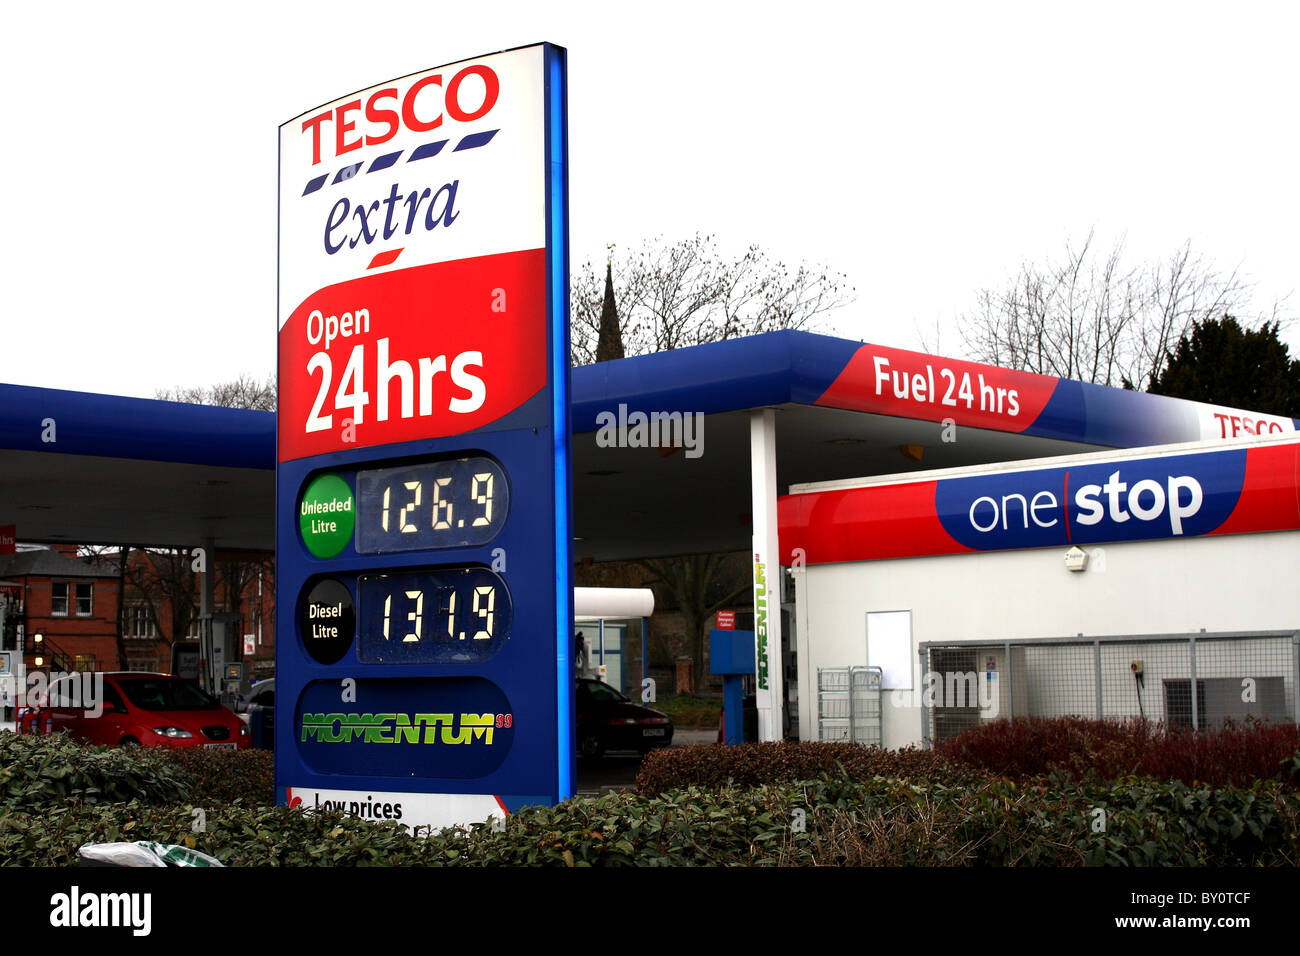 A Tesco Extra fuel station open 24hrs showing the petrol prices at the garage after the VAT rise Stock Photo